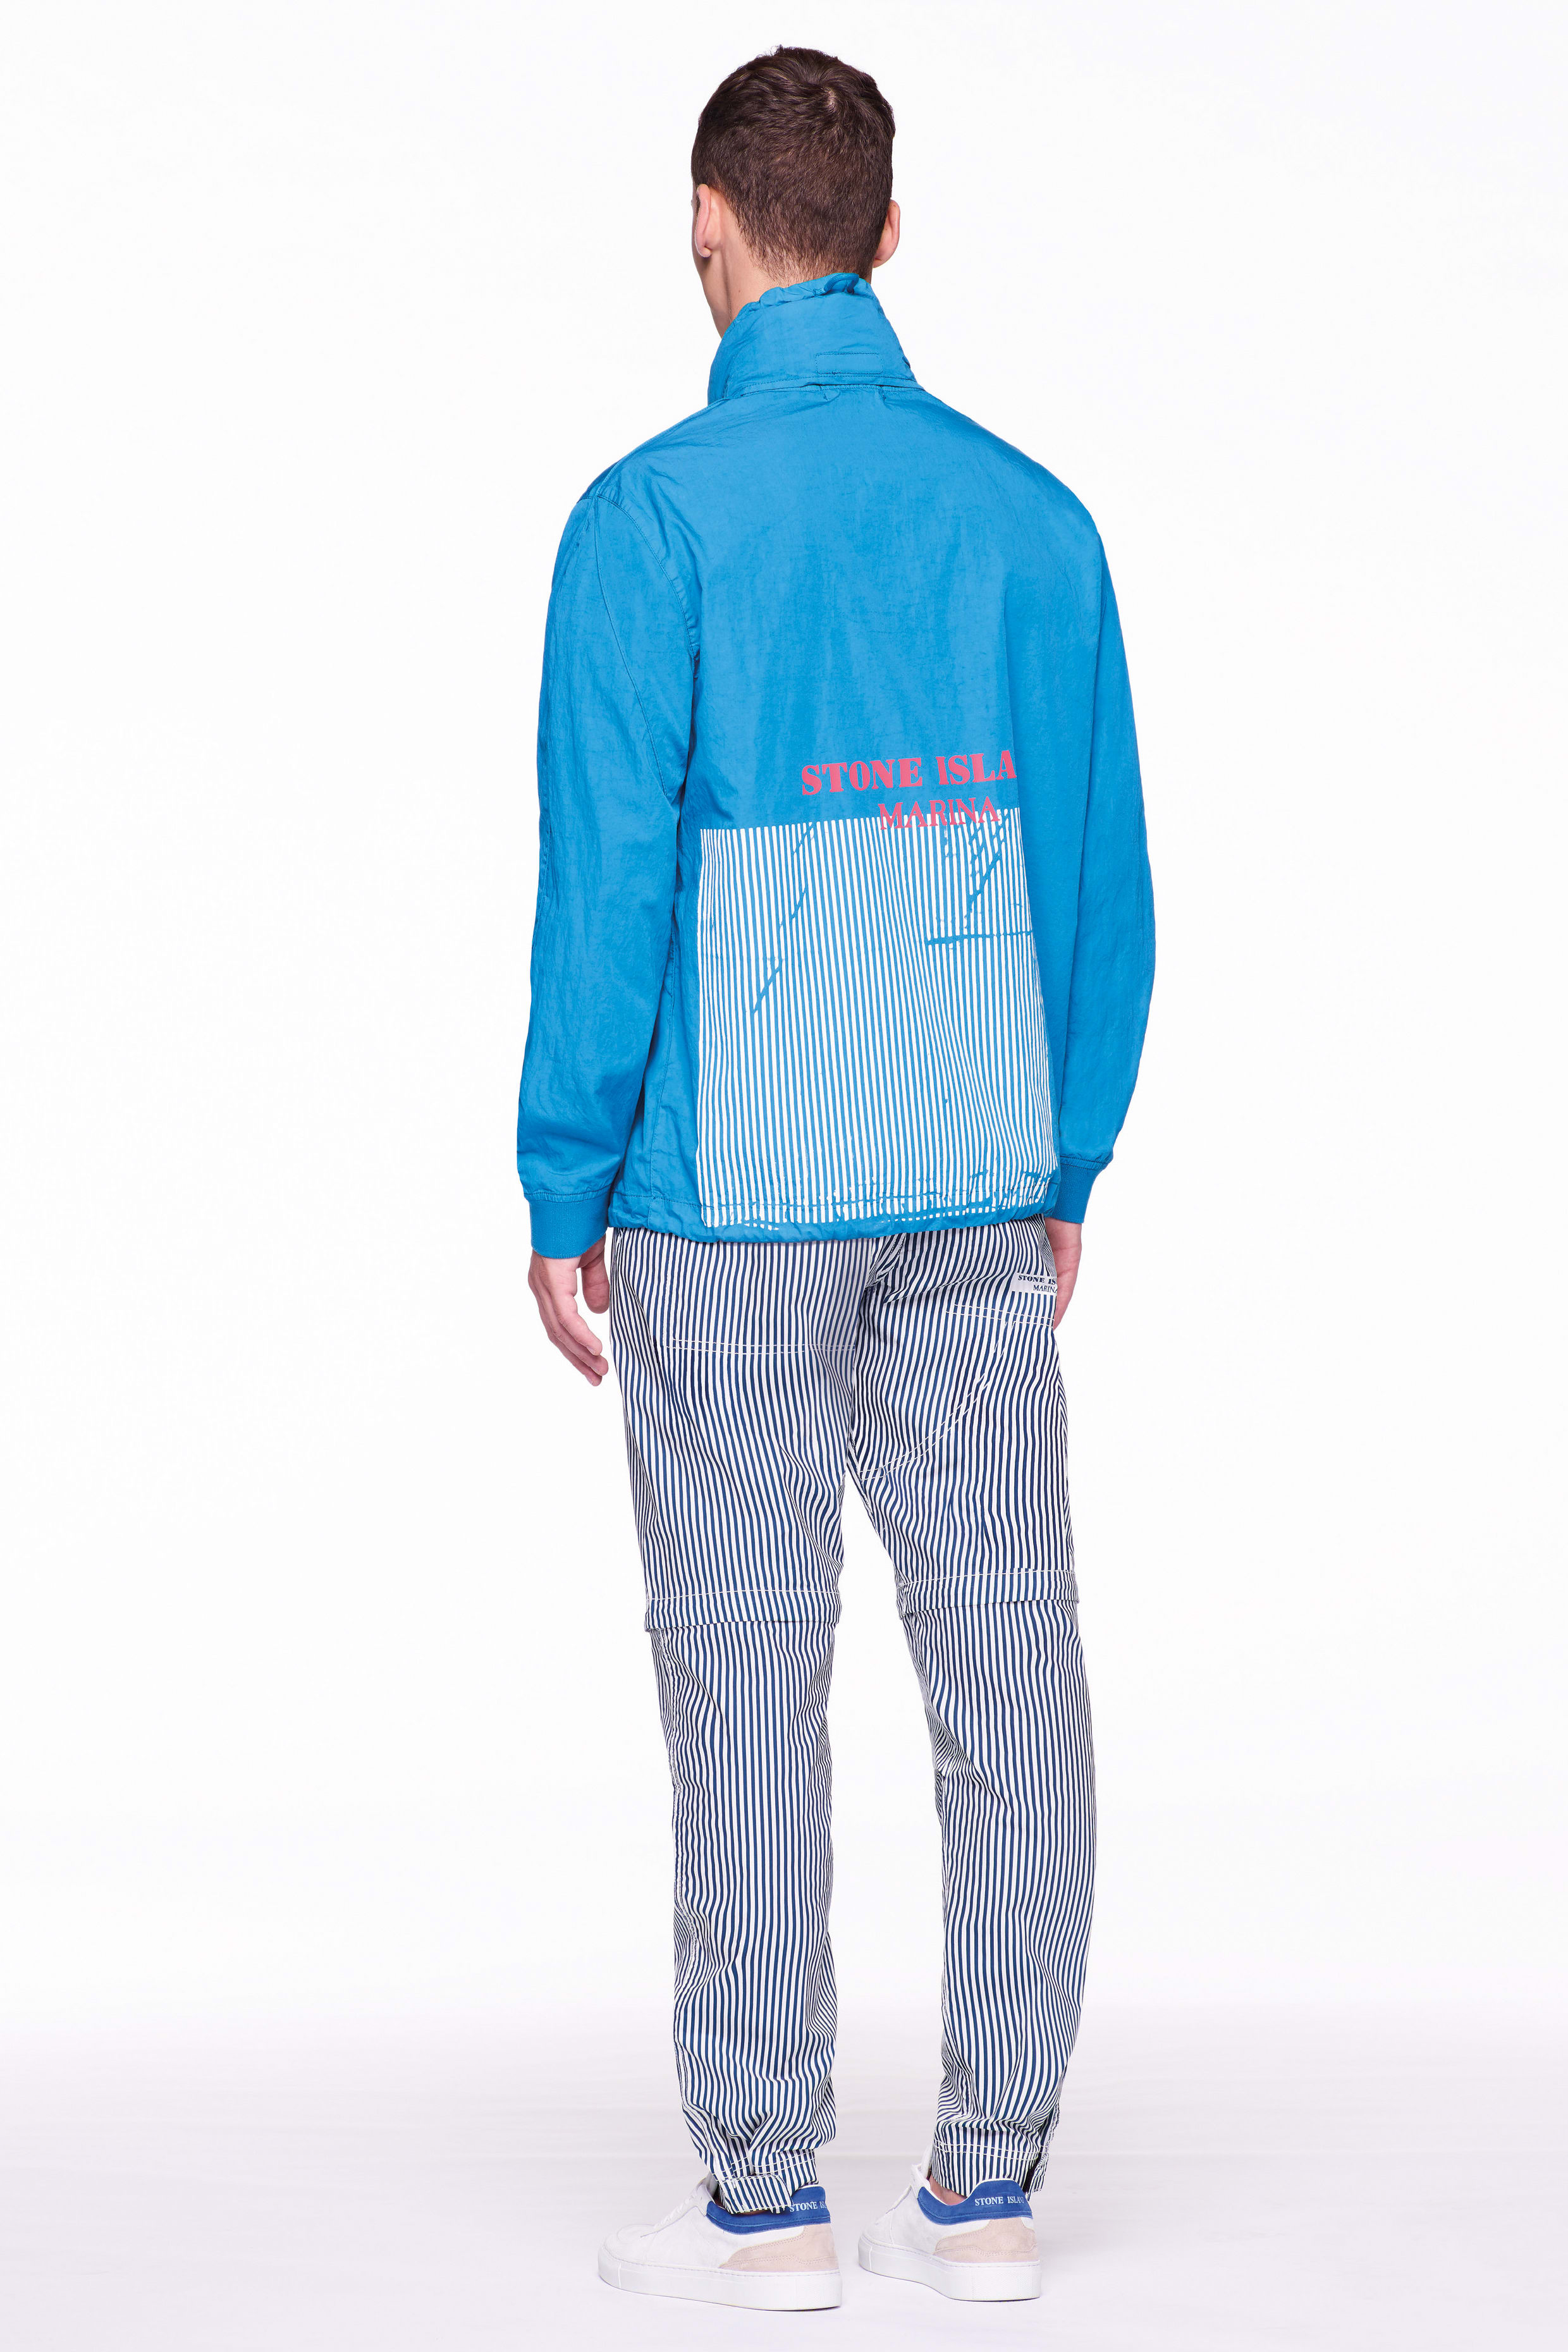 ss18-si15